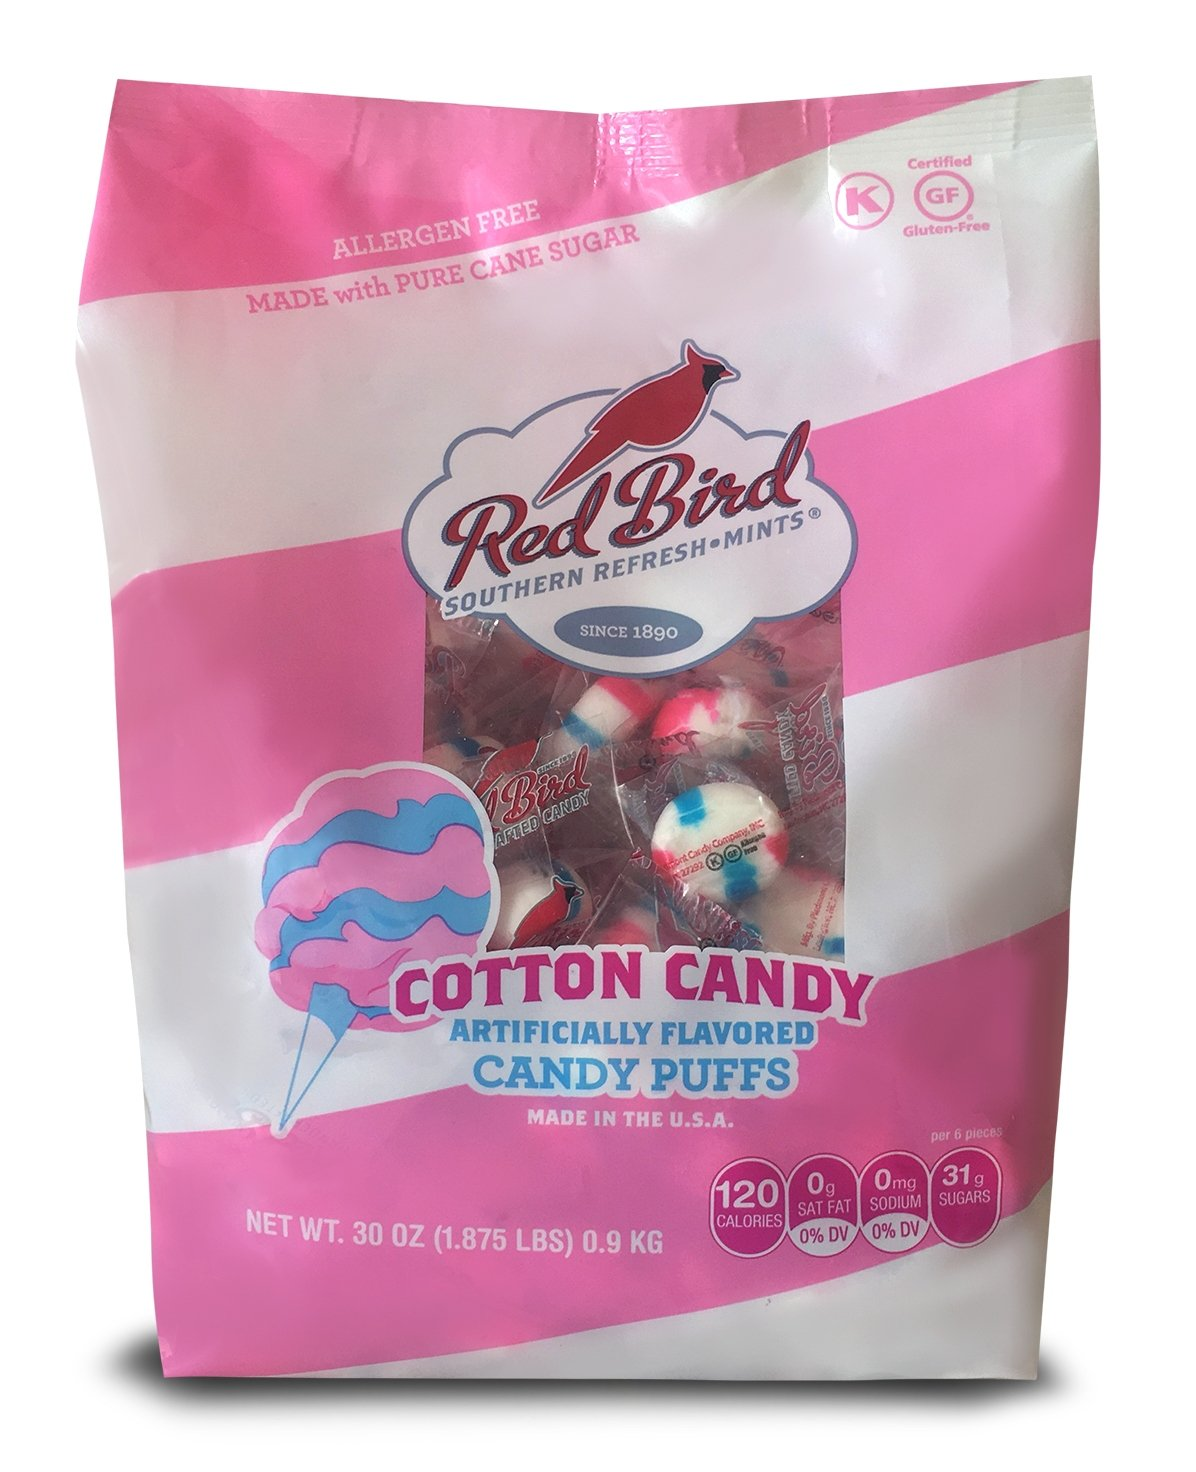 Red Bird Cotton Candy Puffs, 30 oz bag   Made w/100% Pure Cane Sugar   Melt-in-Your-Mouth Candy   Allergen-Free, Gluten-Free, Kosher and Individually Wrapped